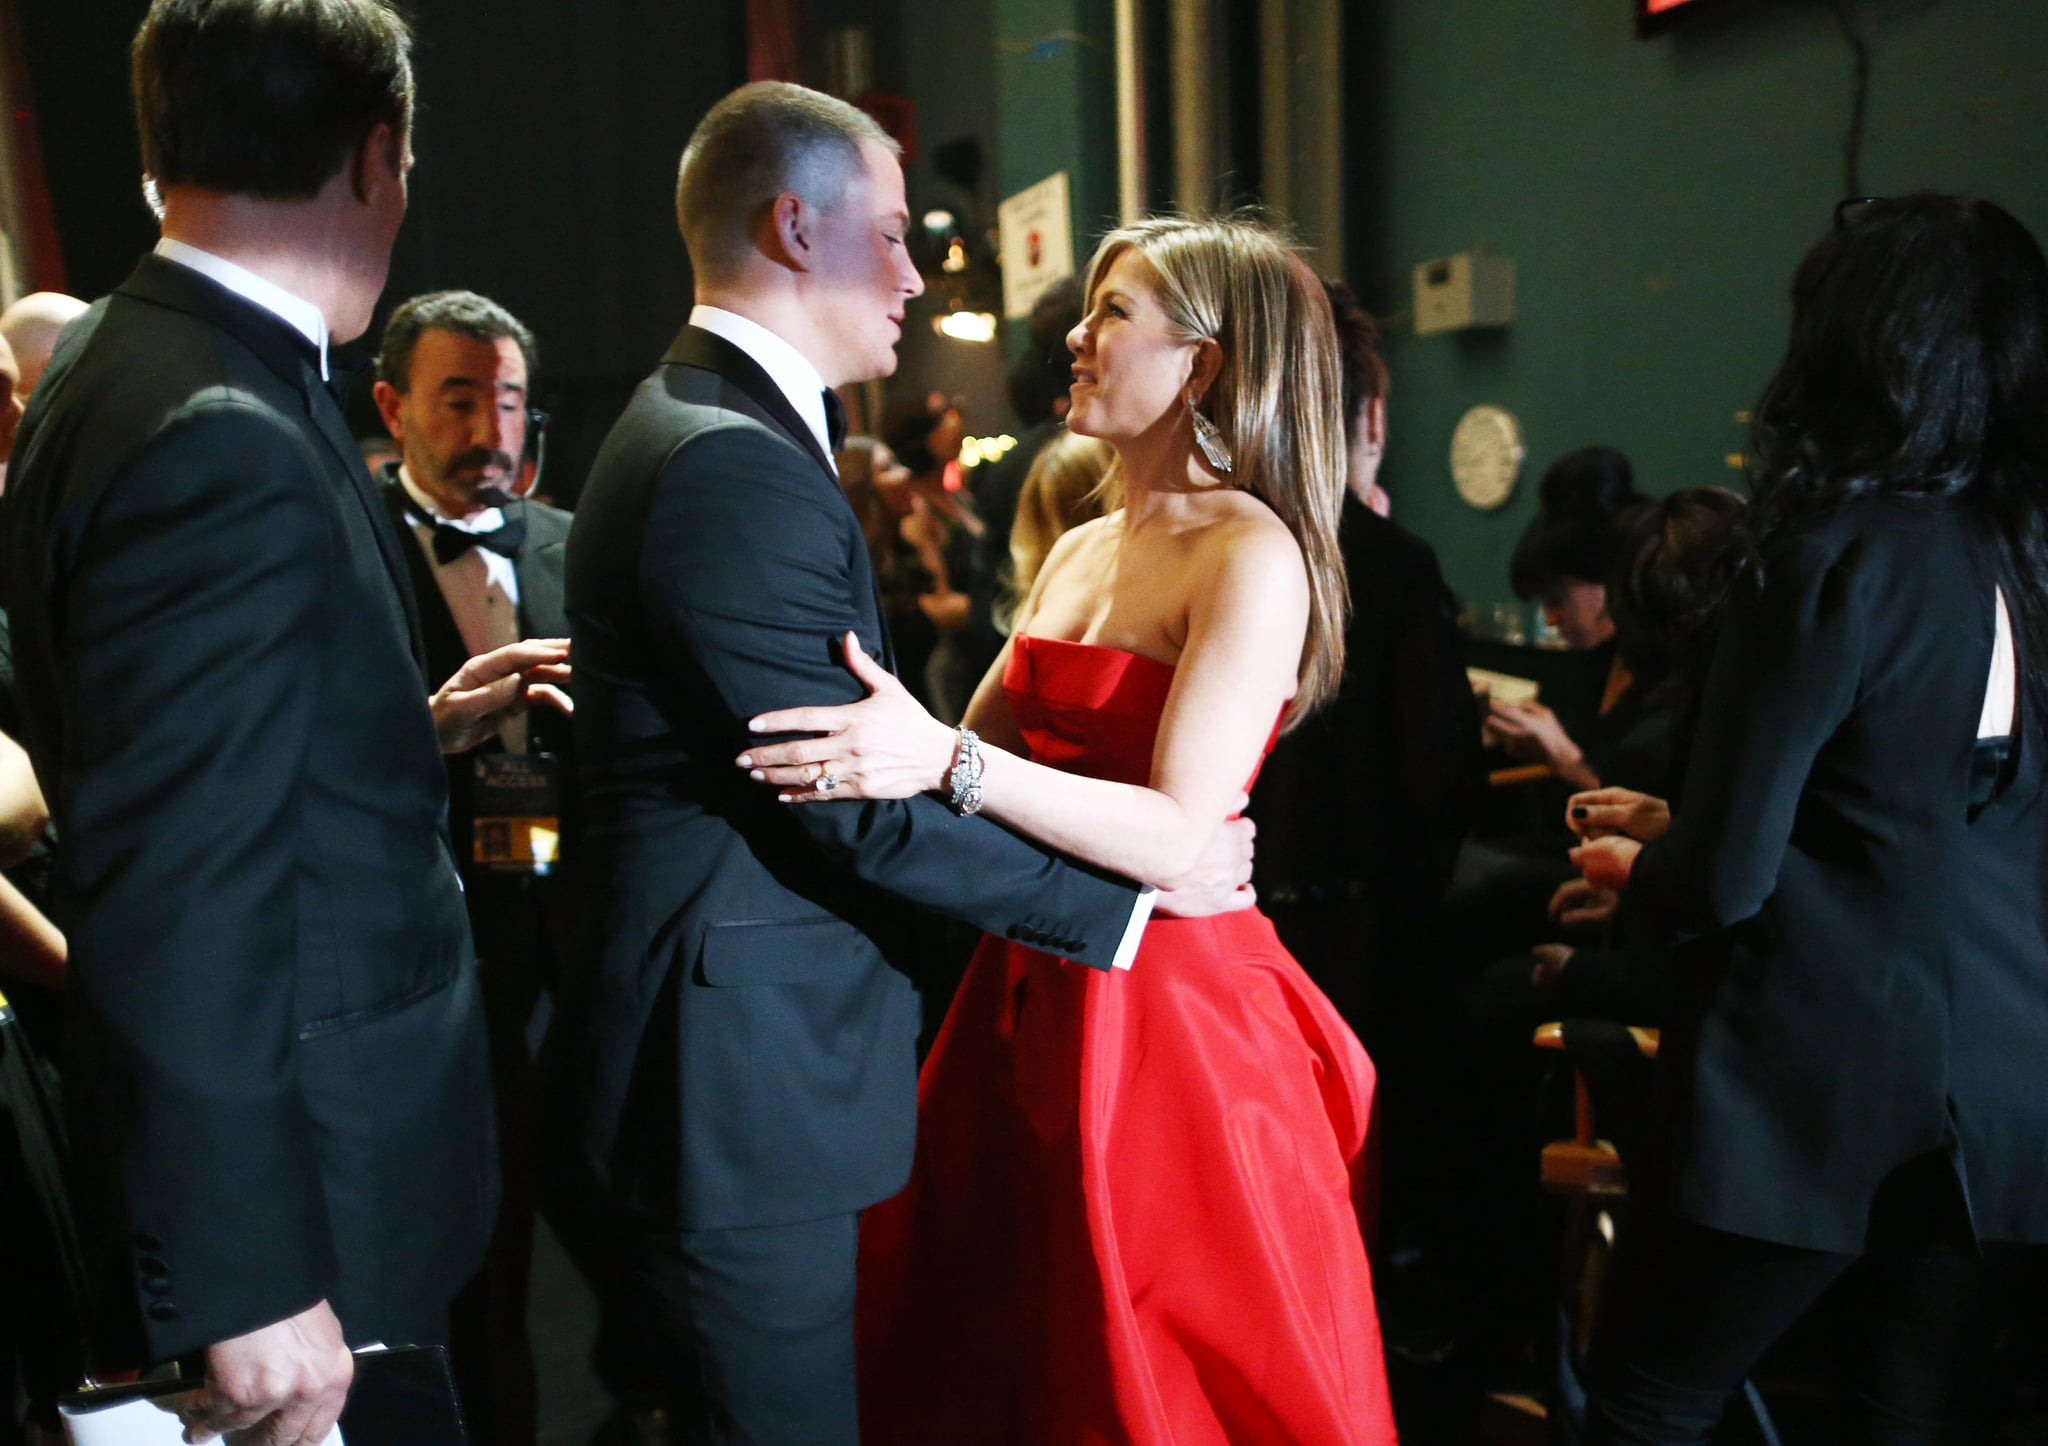 Jennifer Aniston shared an exchange with Channing Tatum backstage.